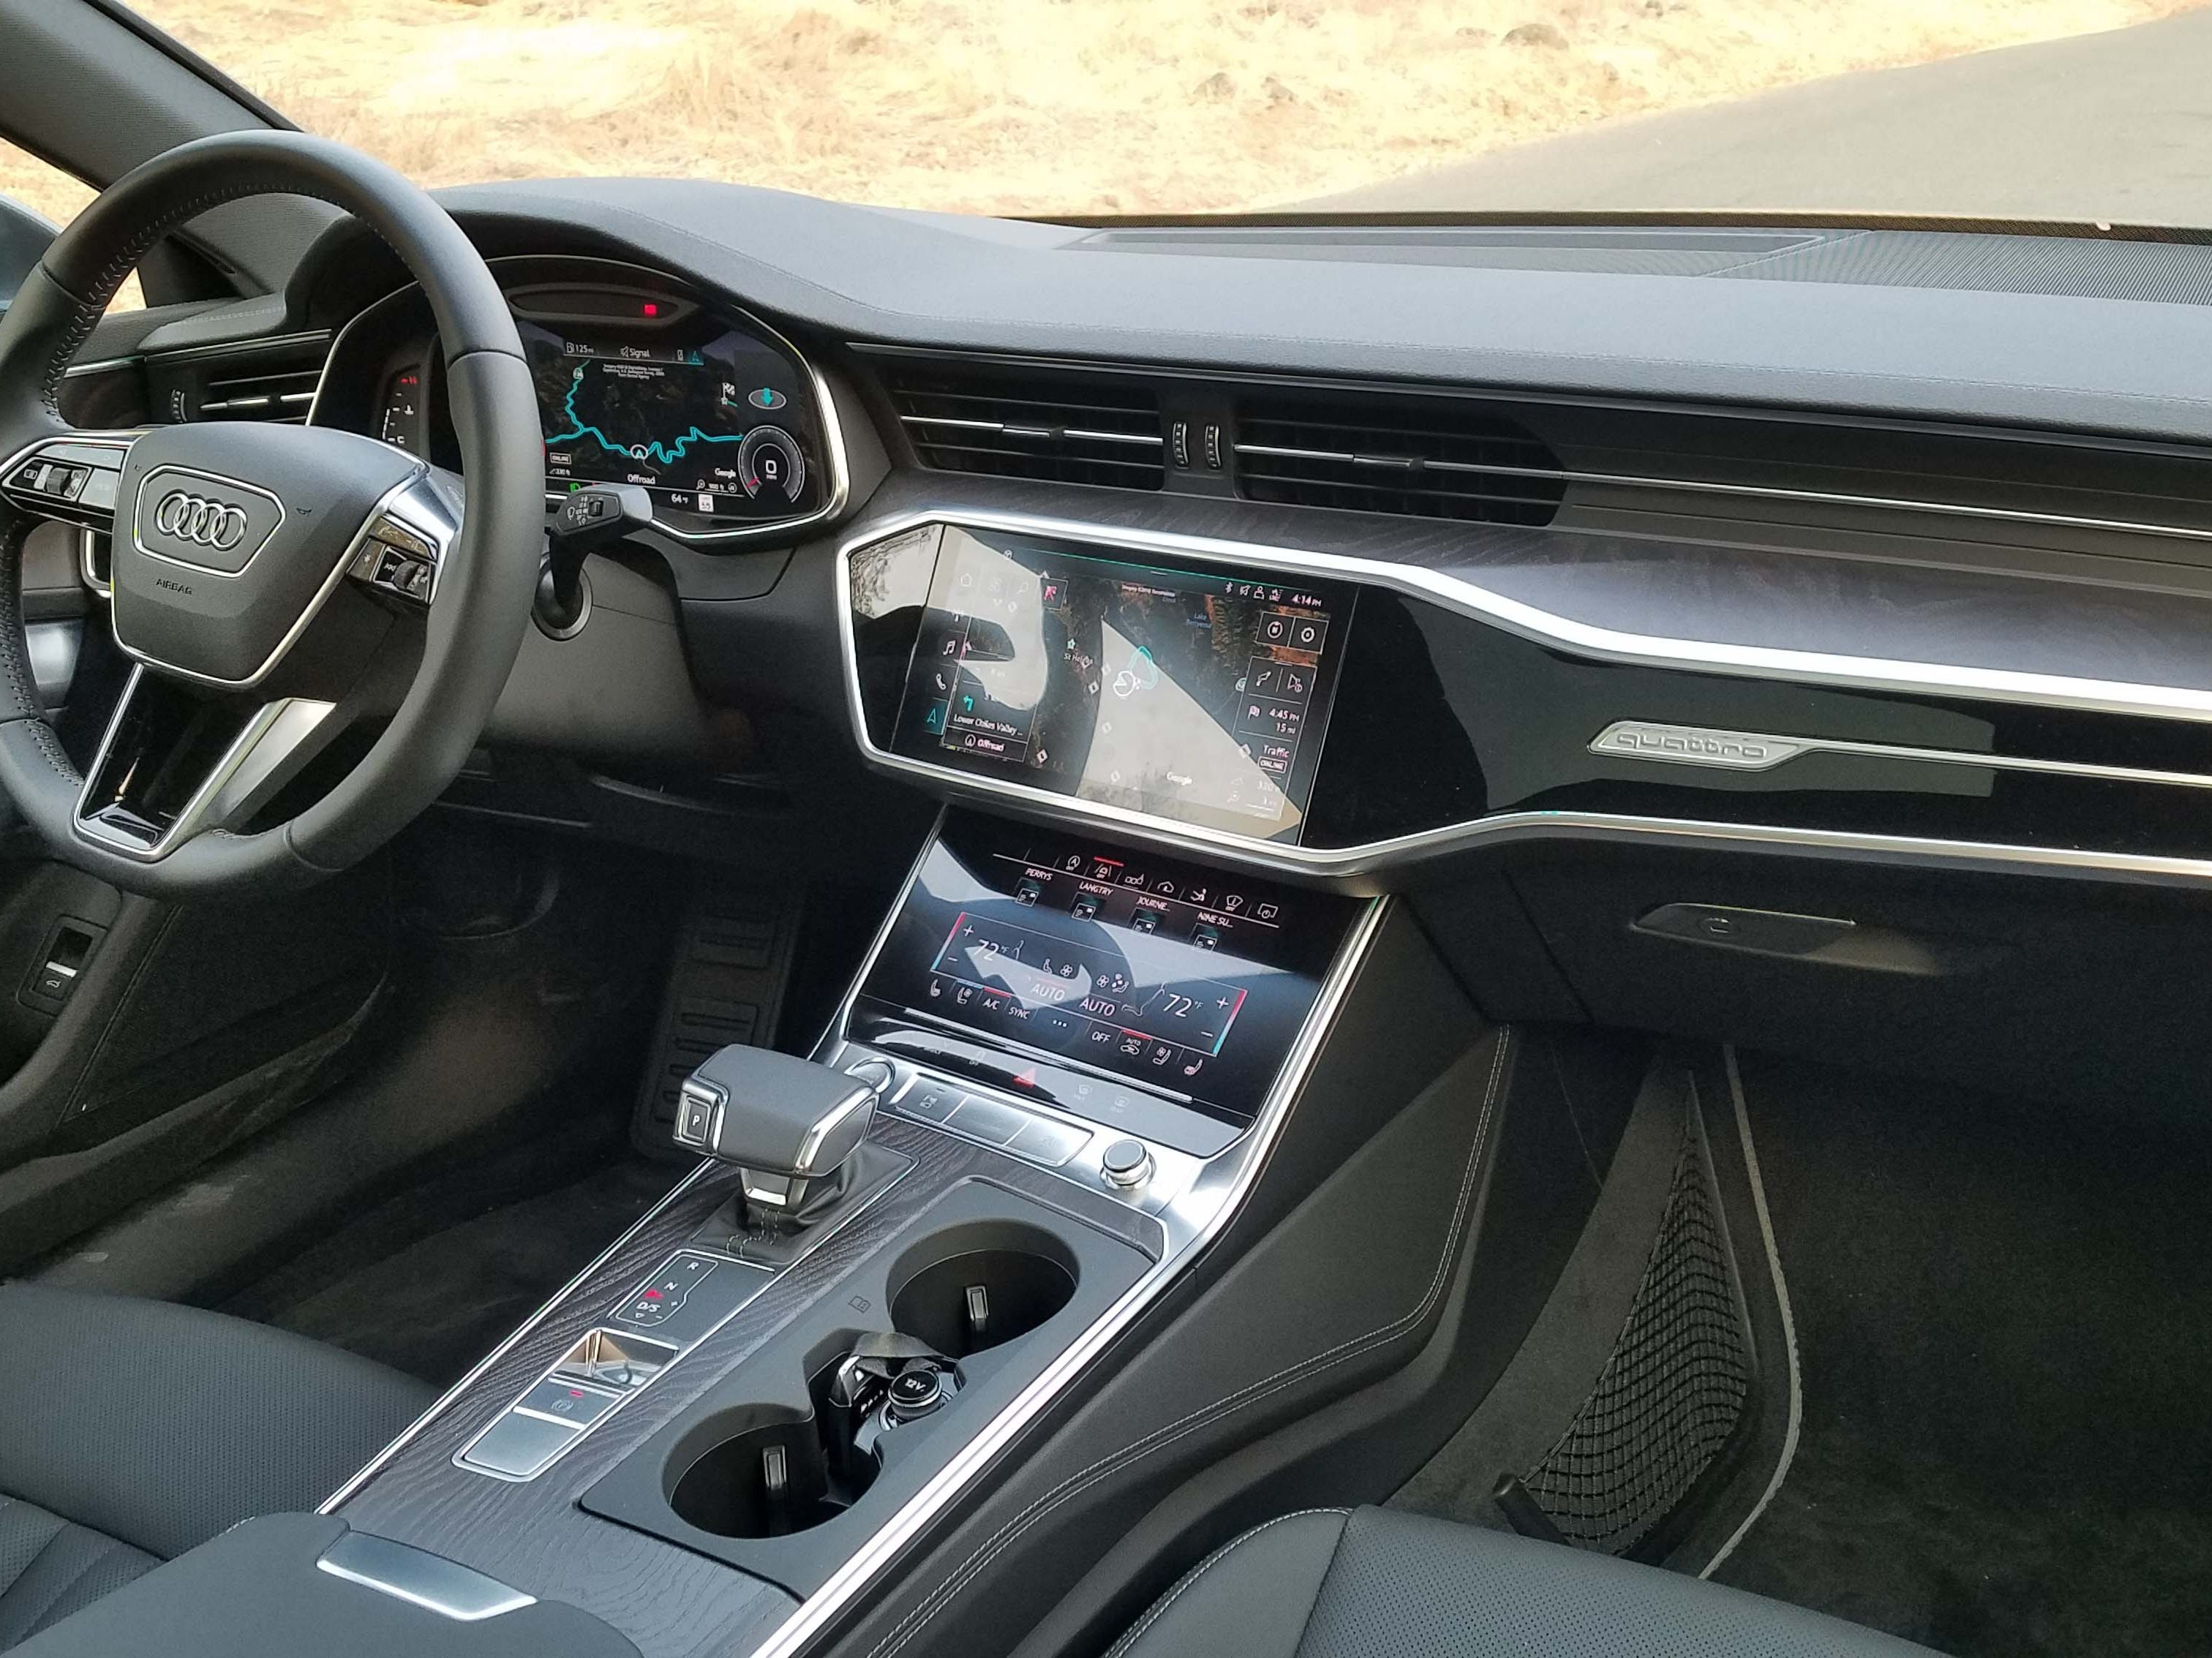 The Audi A7 features the brand's latest touch screen technology (10.1- inch upper and 8.6-inch lower) that ditches the old familiar rotary dial. Console storage room, however, is still sparse.